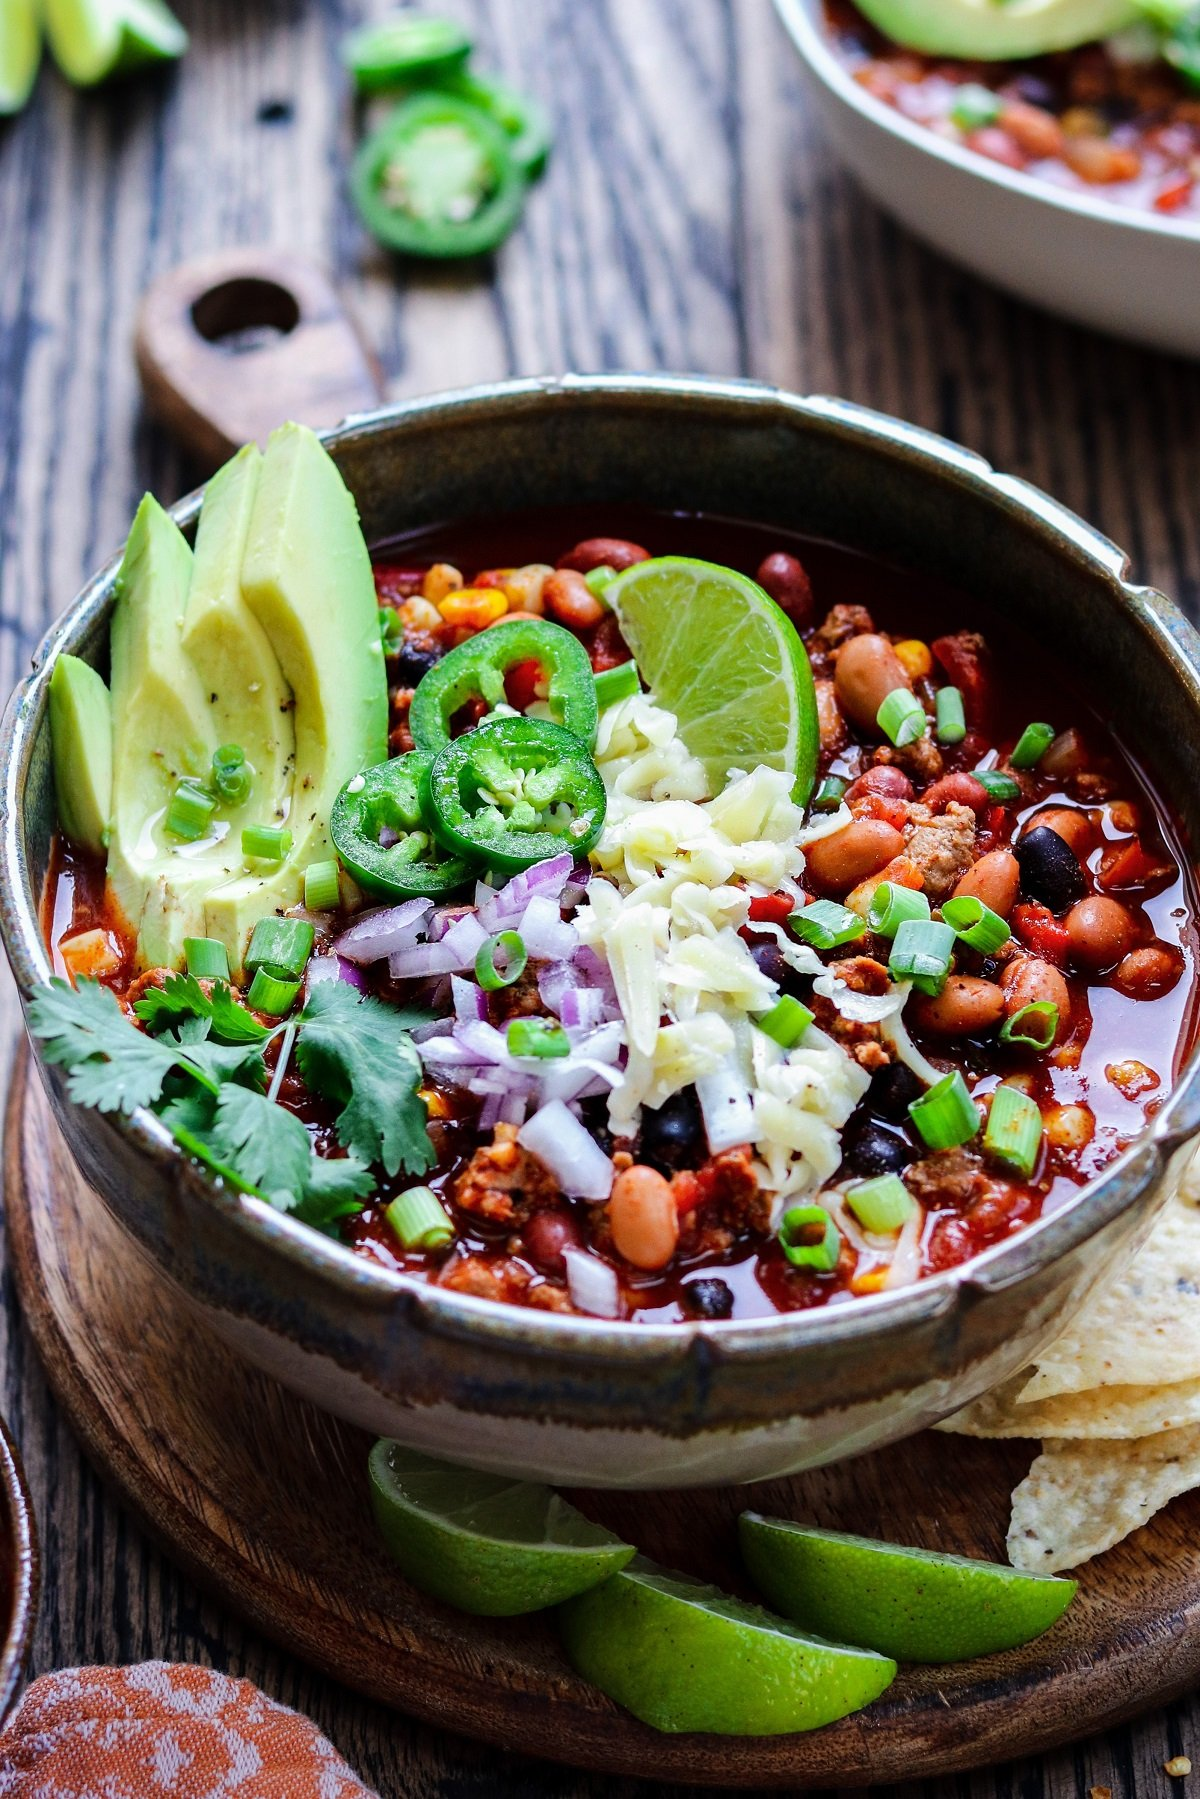 Gluten-free chili with garnishes served on wooden charger.